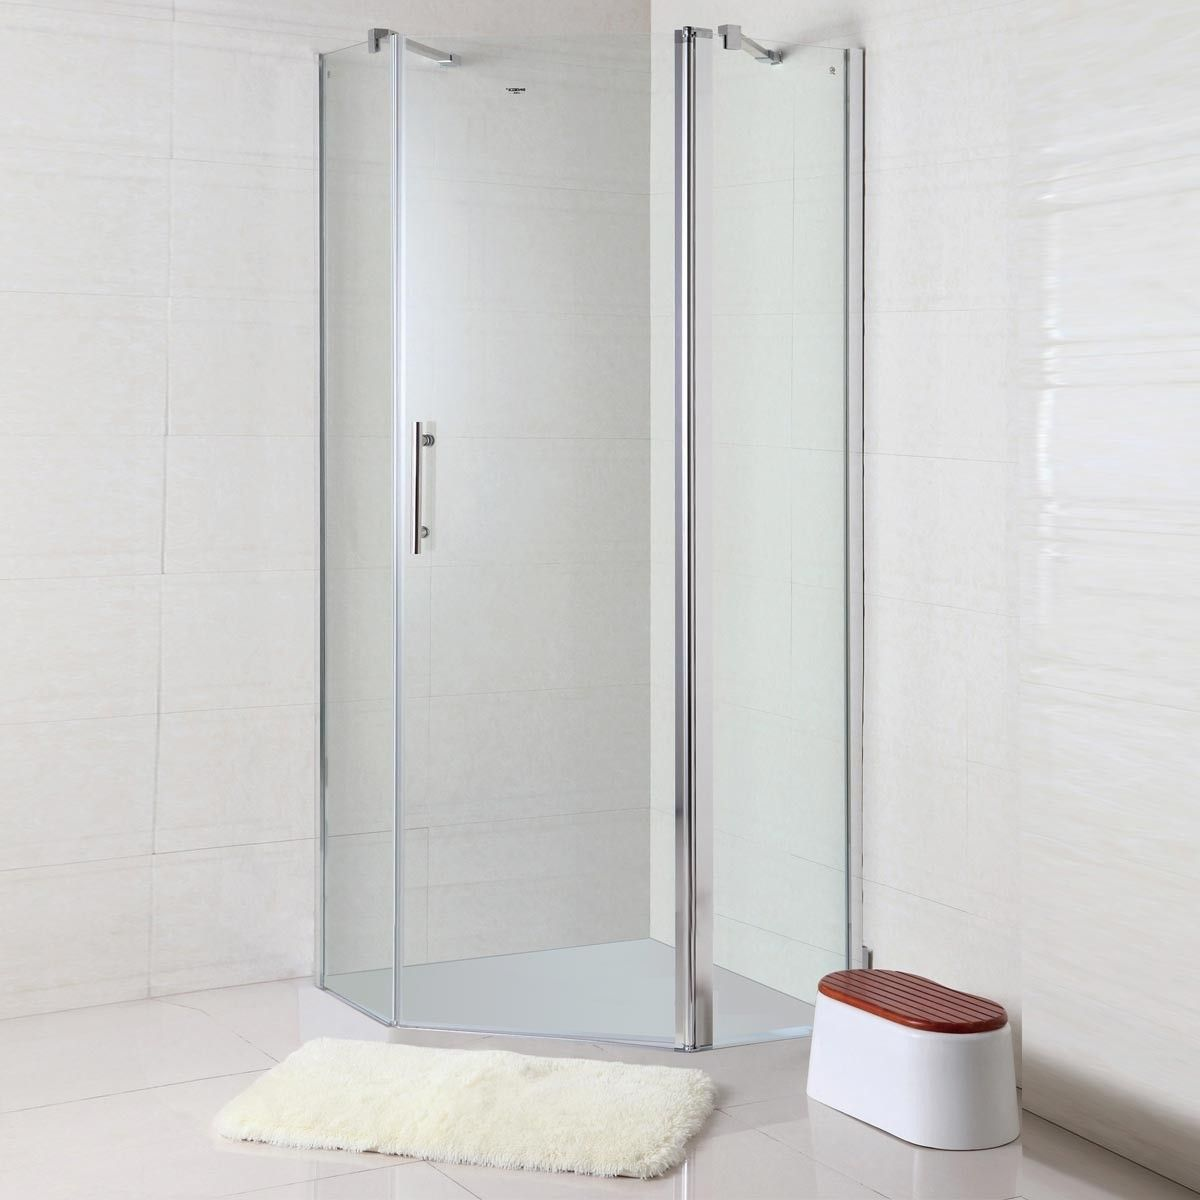 36 x 36 In. (90 x 90 cm) Clear Tempered Glass Corner Shower Stall (WB-03)